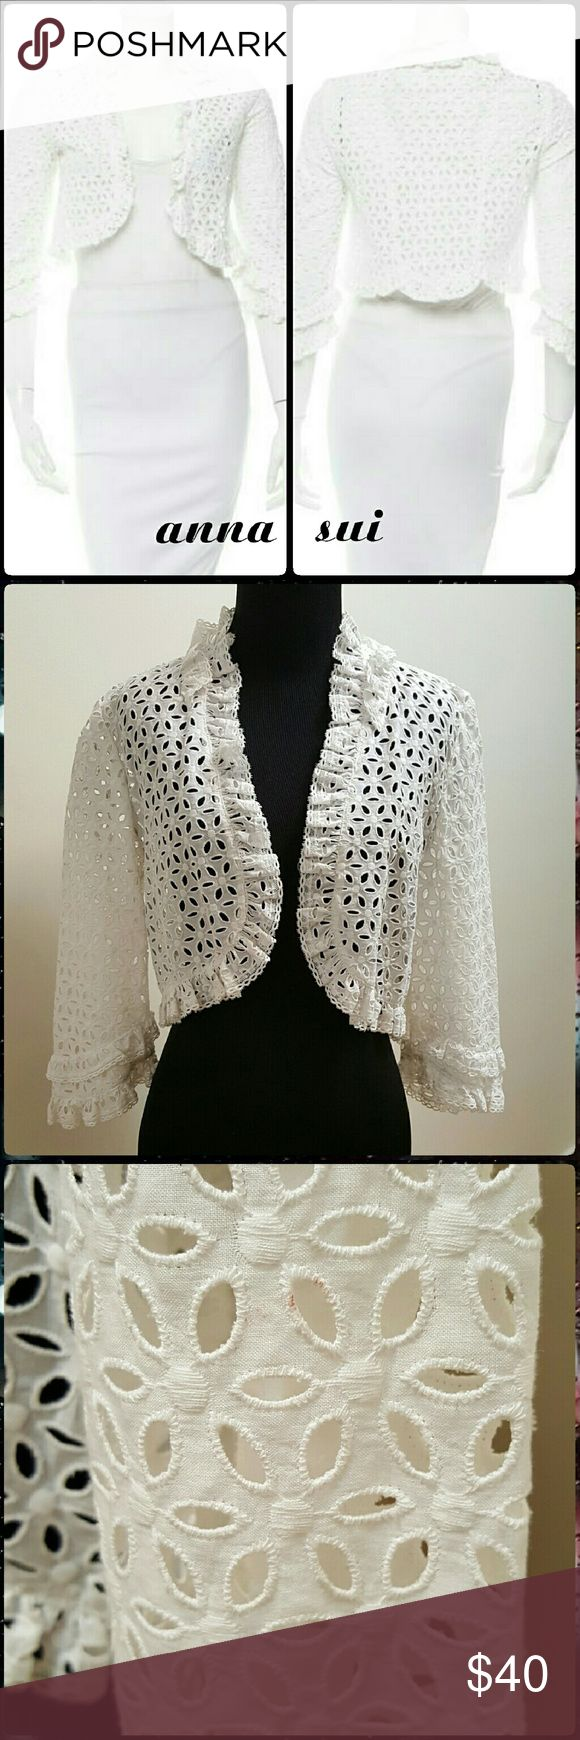 Anna Sui Eyelet Crop Jacket Sweet flower eyelets with ruffle trim on this lightweight crop cardigan. Upon very close inspection I found a minute mark, hardly noticeable on the edge of one of the eyelets by side arm. See photo. Runs on small side Anna Sui Jackets & Coats